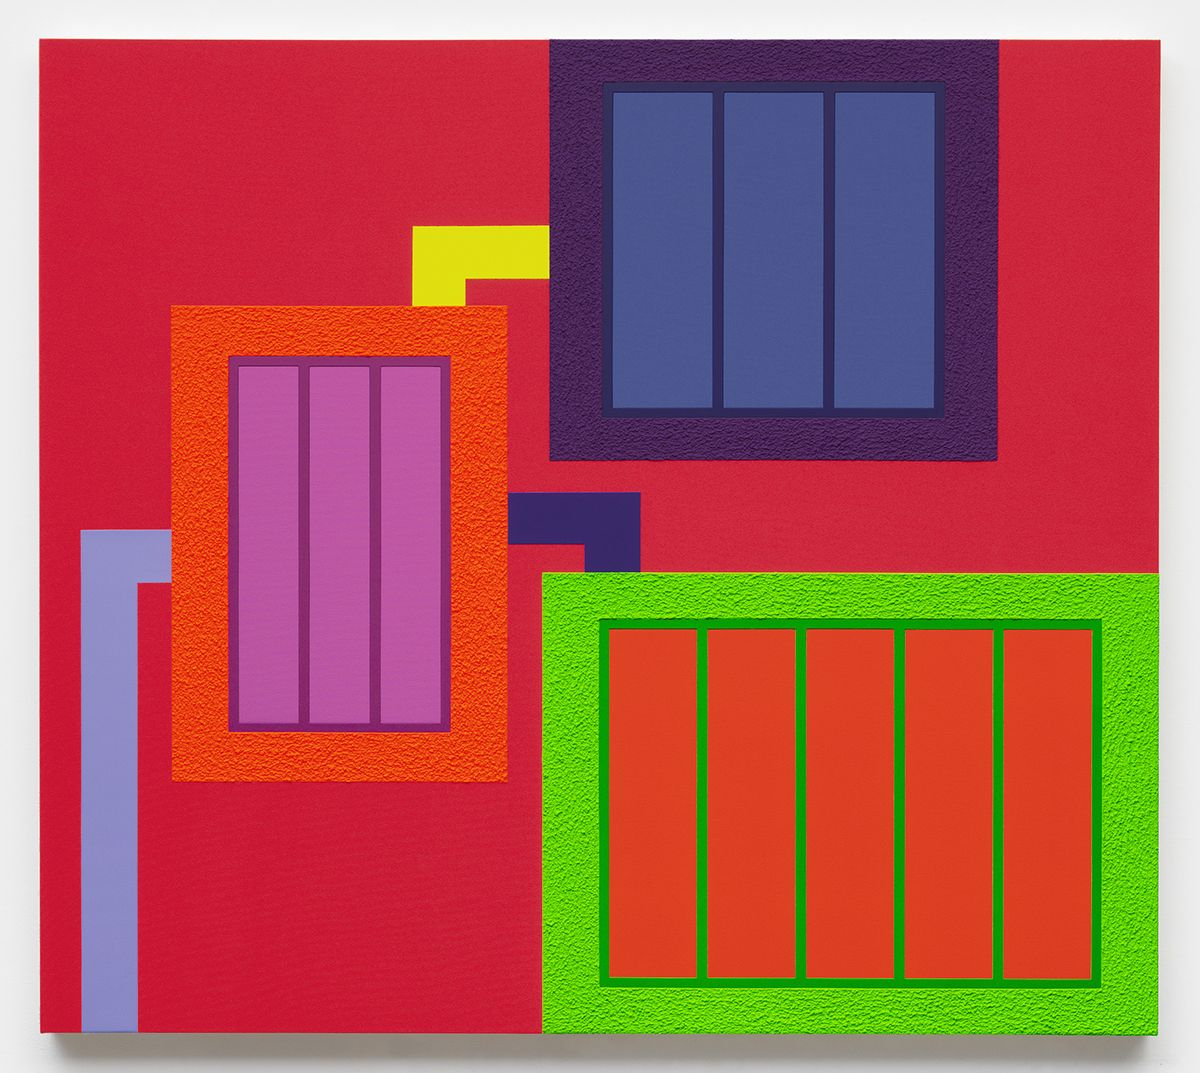 Peter Halley, Dismissed, 2017 Acrylic, fluorescent acrylic, and Roll-A-Tex on canvas 71 x 80 inches (180.3 x 203.2 cm)